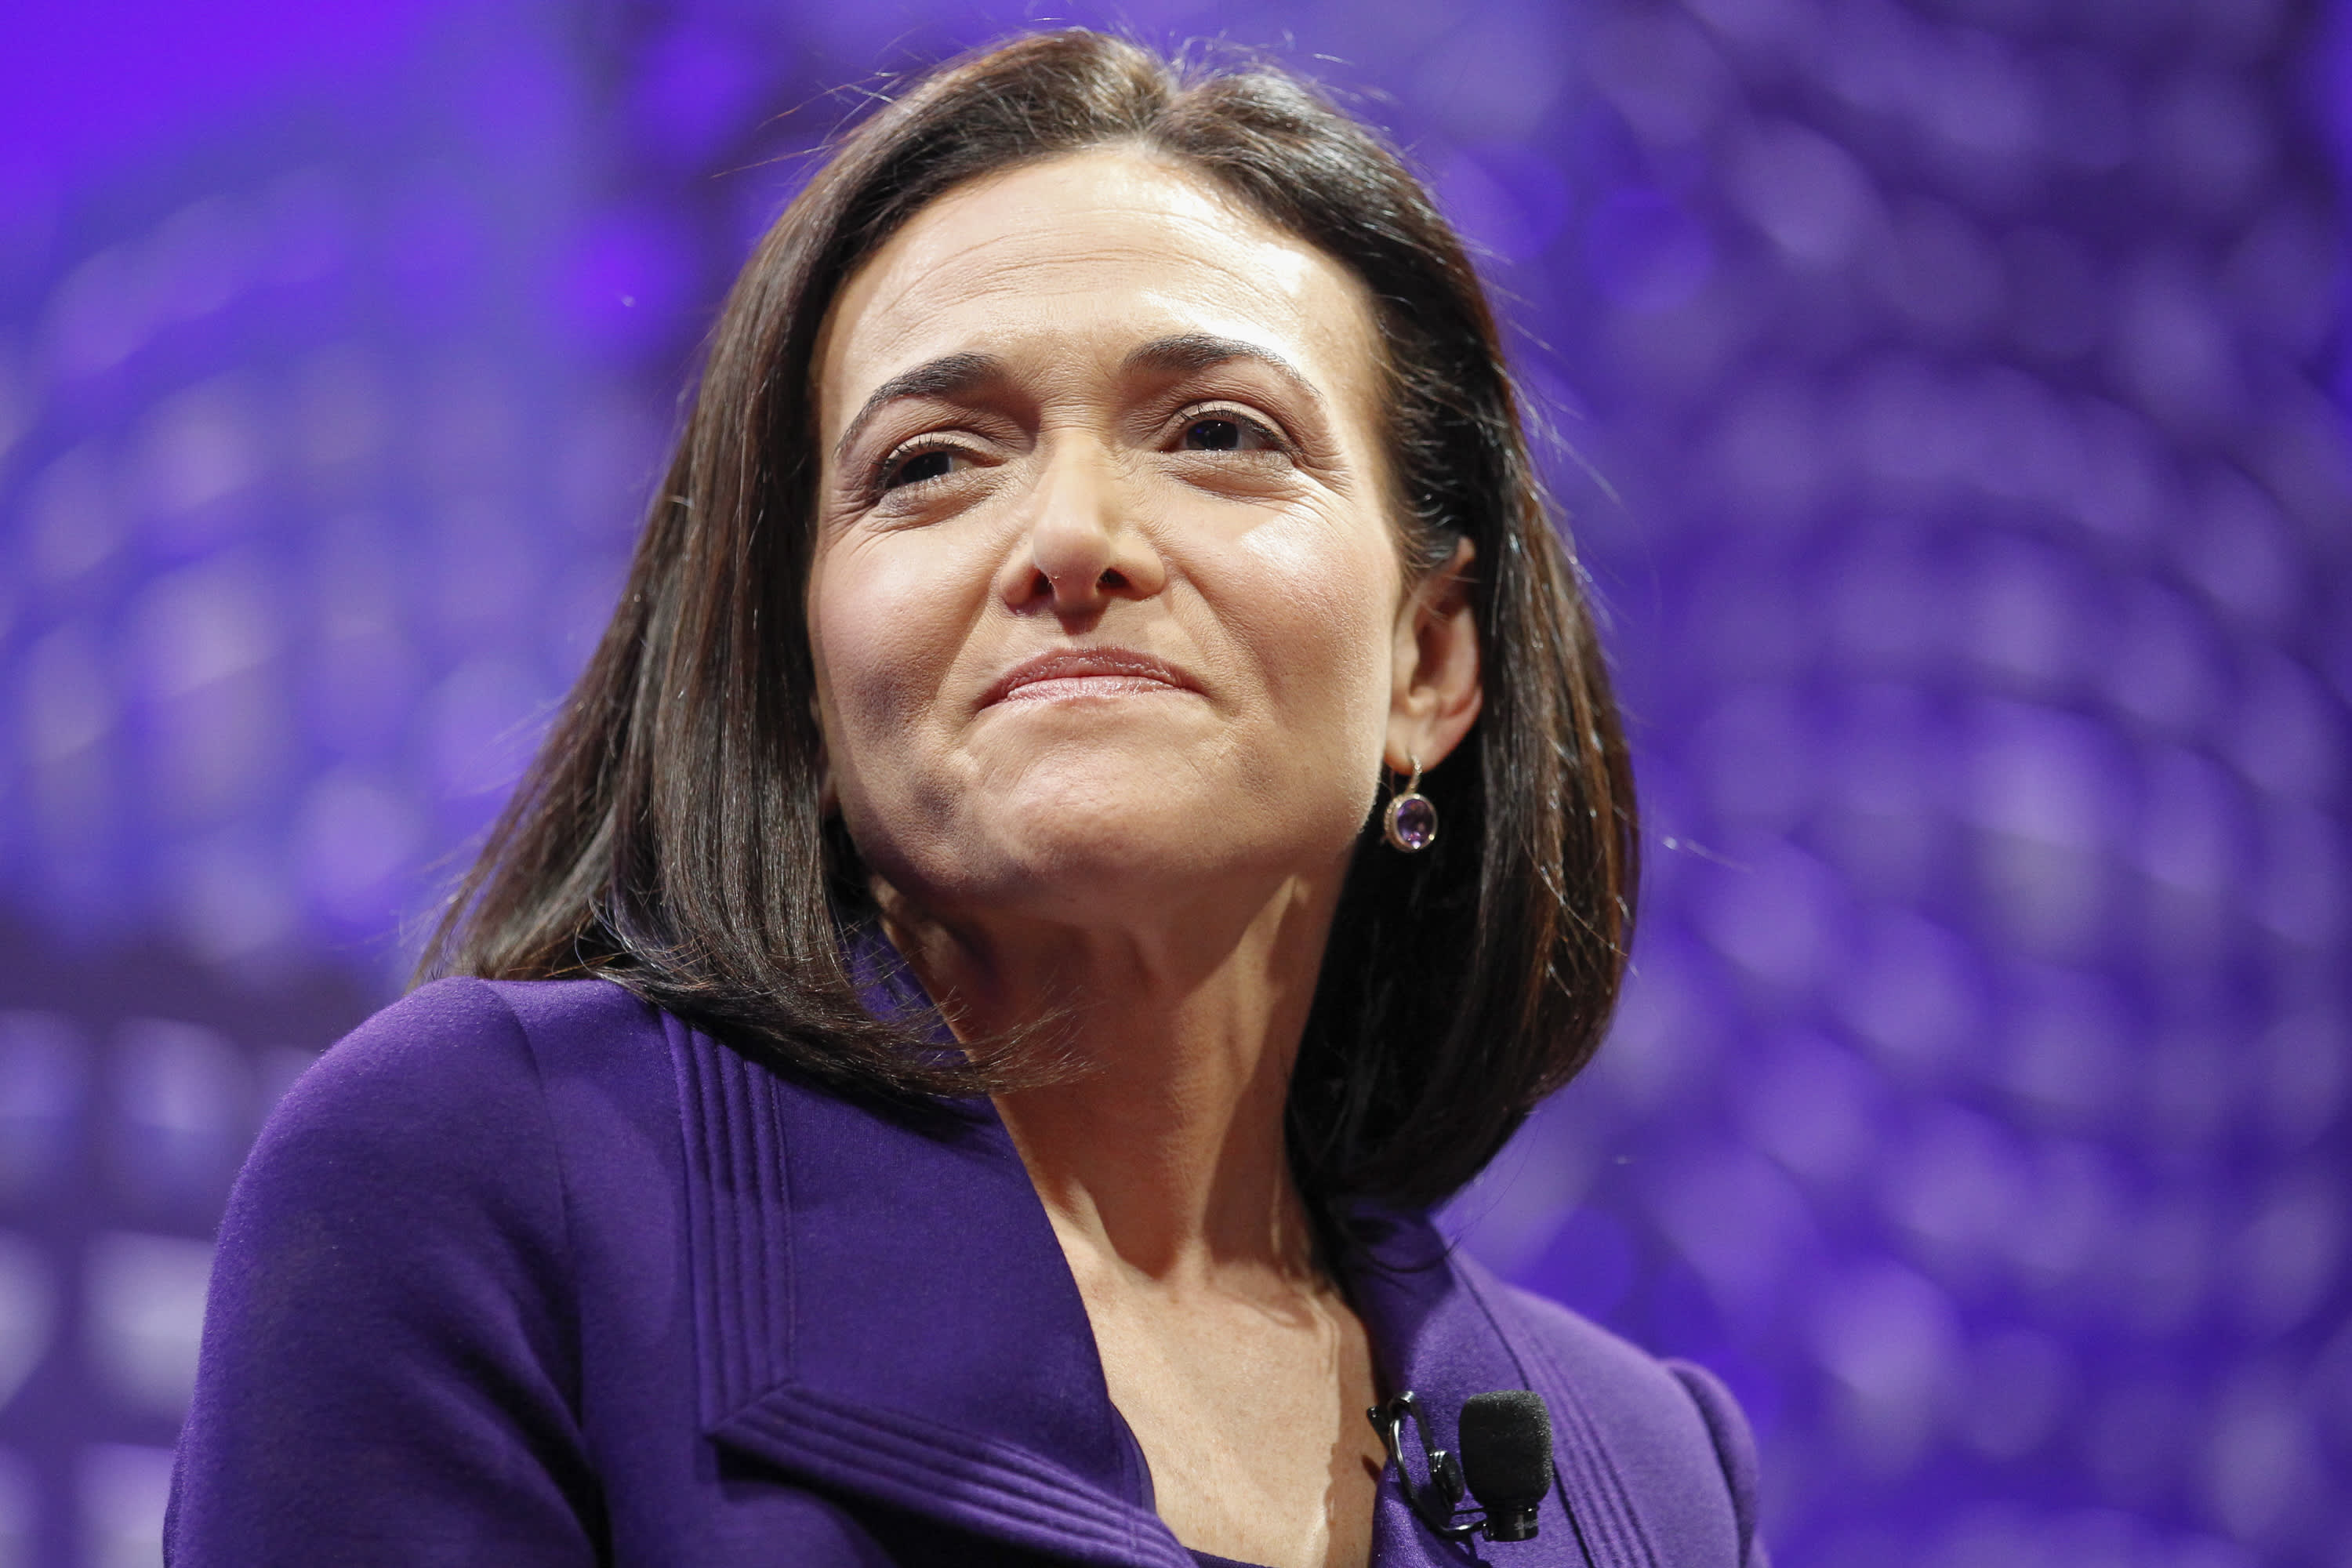 Facebook COO Sheryl Sandberg: We Need to Set up the Right Rules for the Internet